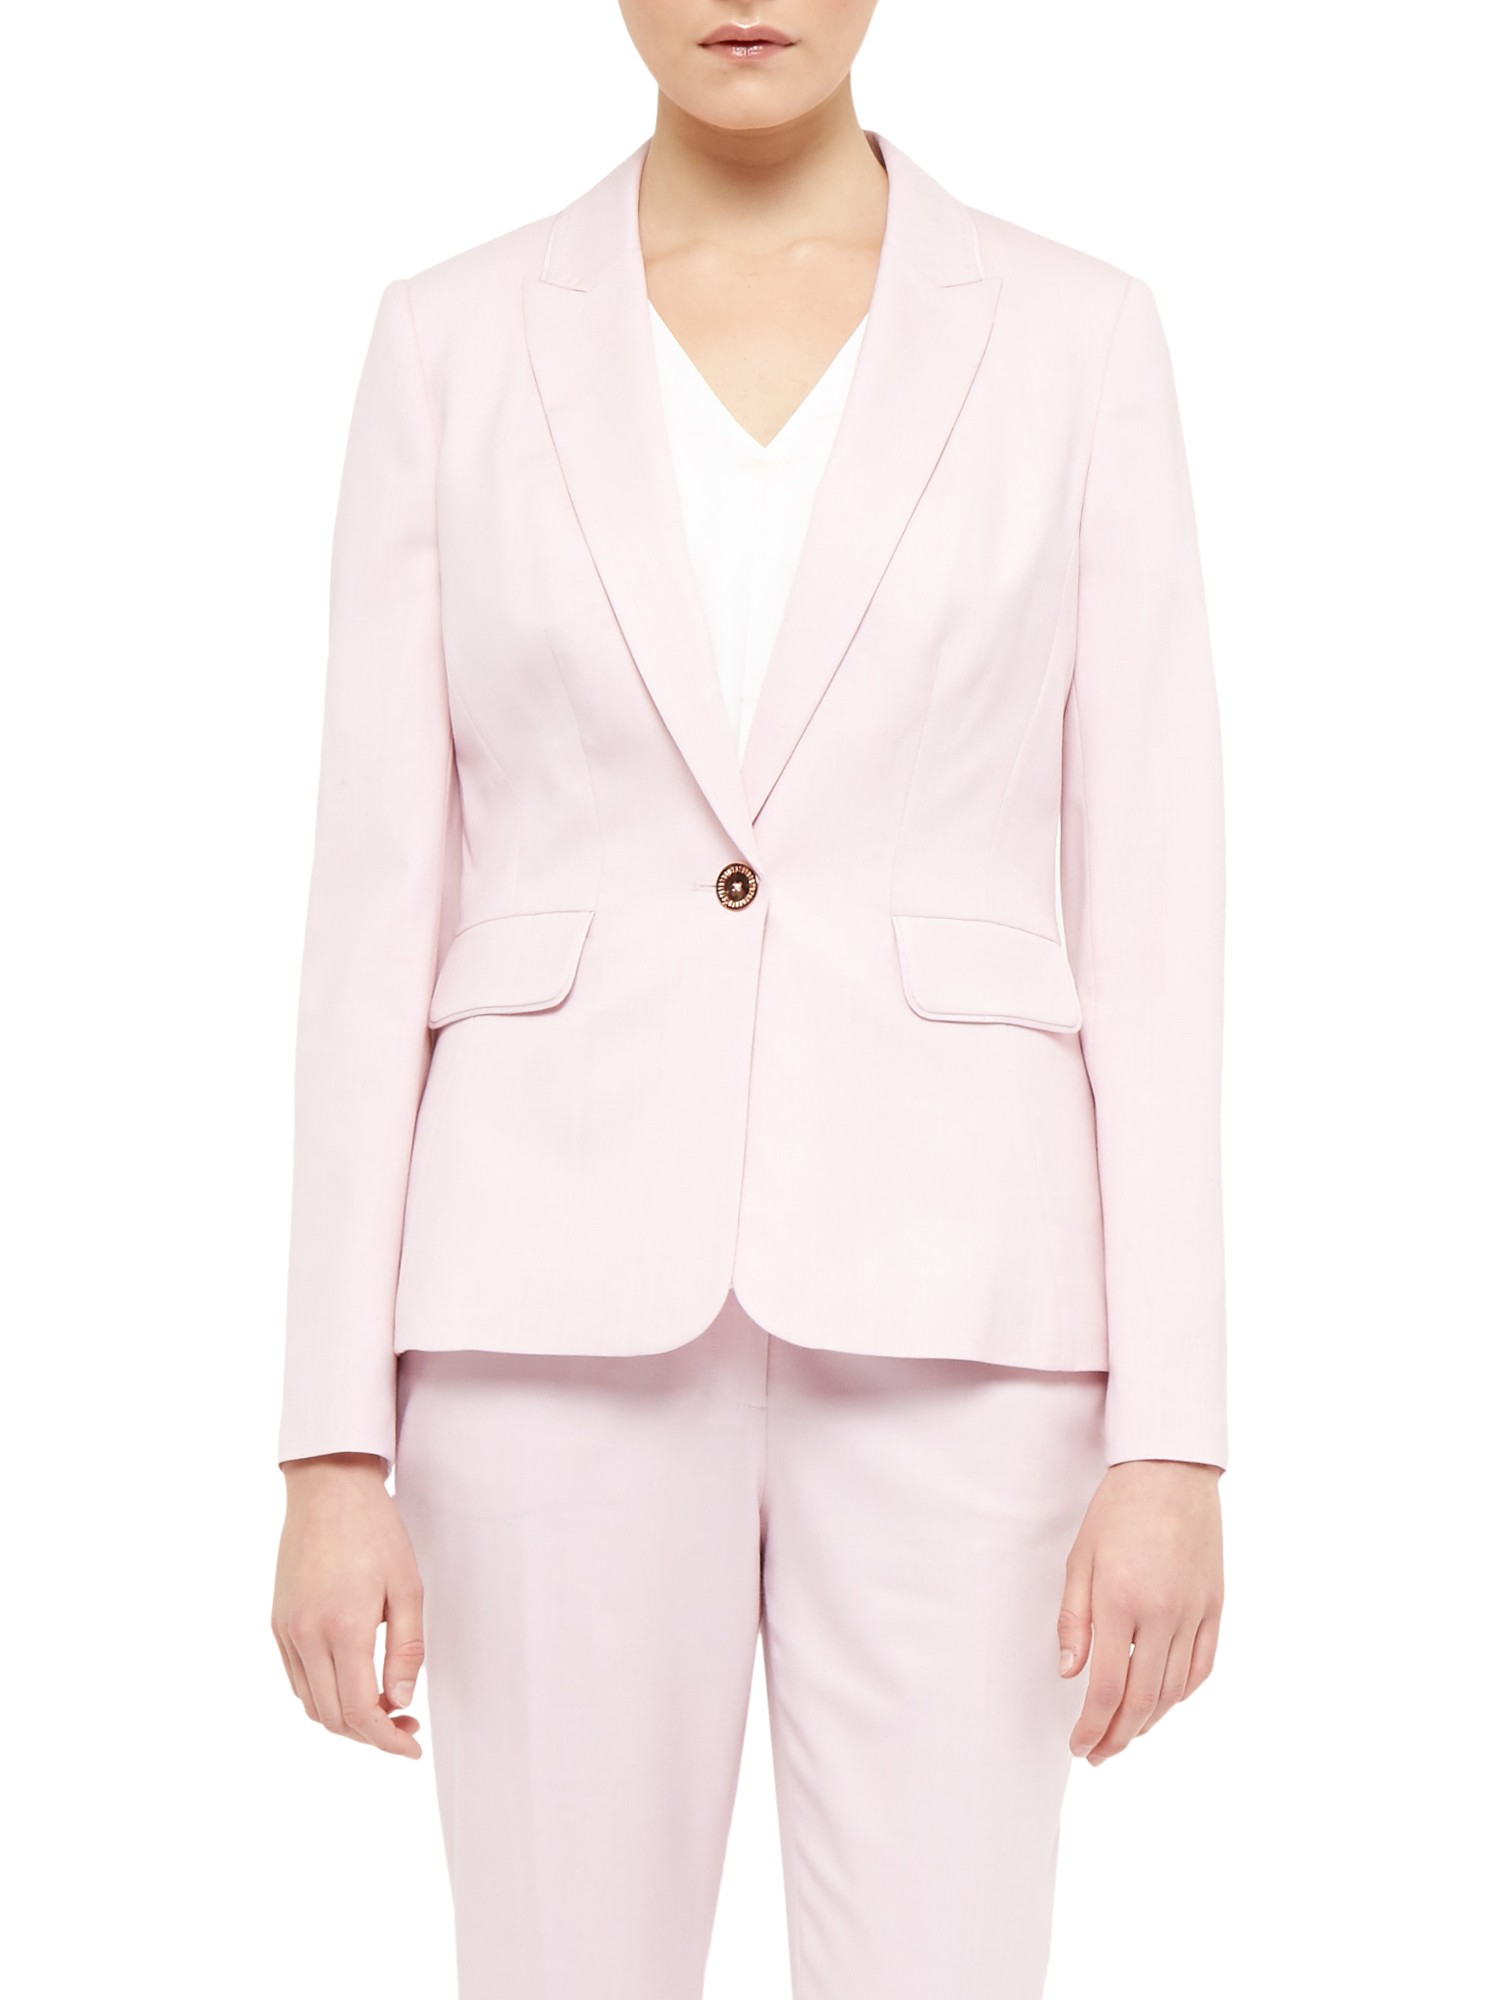 b6f829186 Ted Baker Soreli Tailored Jacket in Pink - Lyst